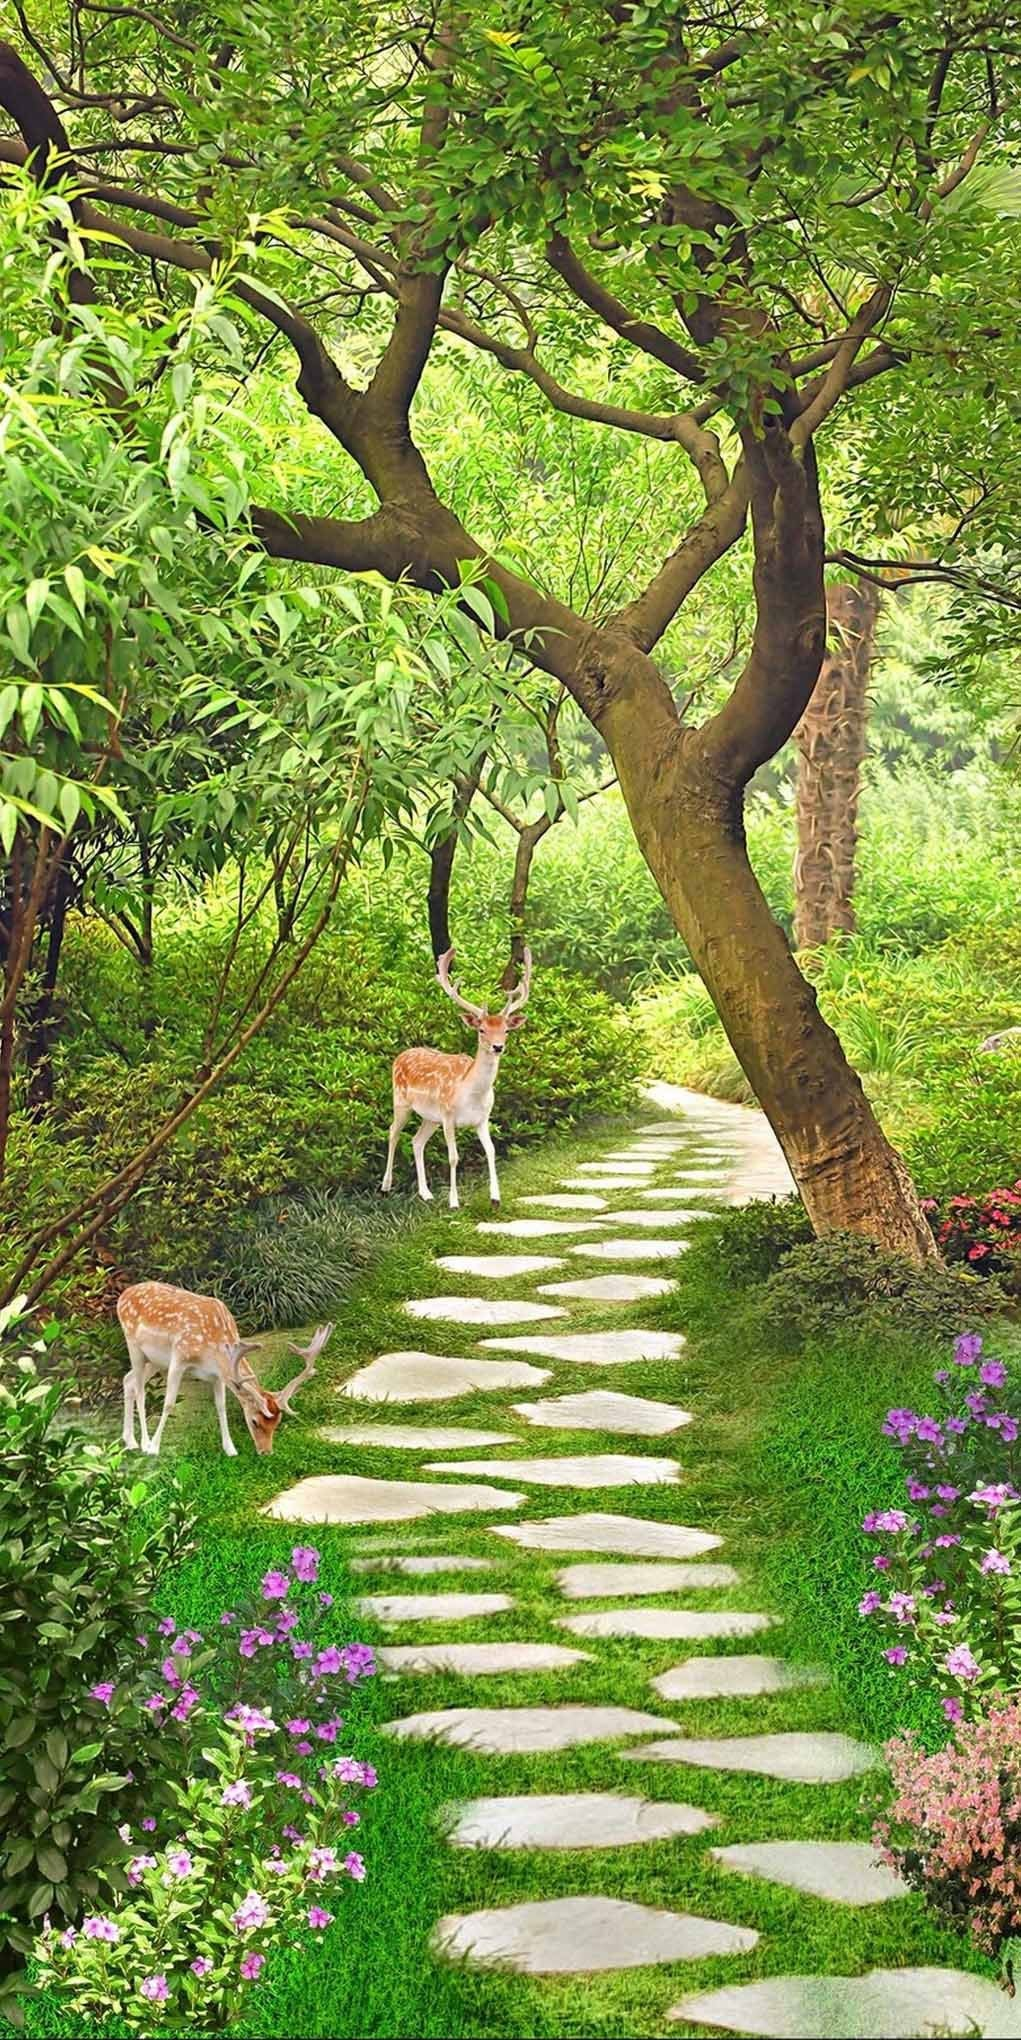 3D little elk by the roadside door mural Wallpaper AJ Wallpaper